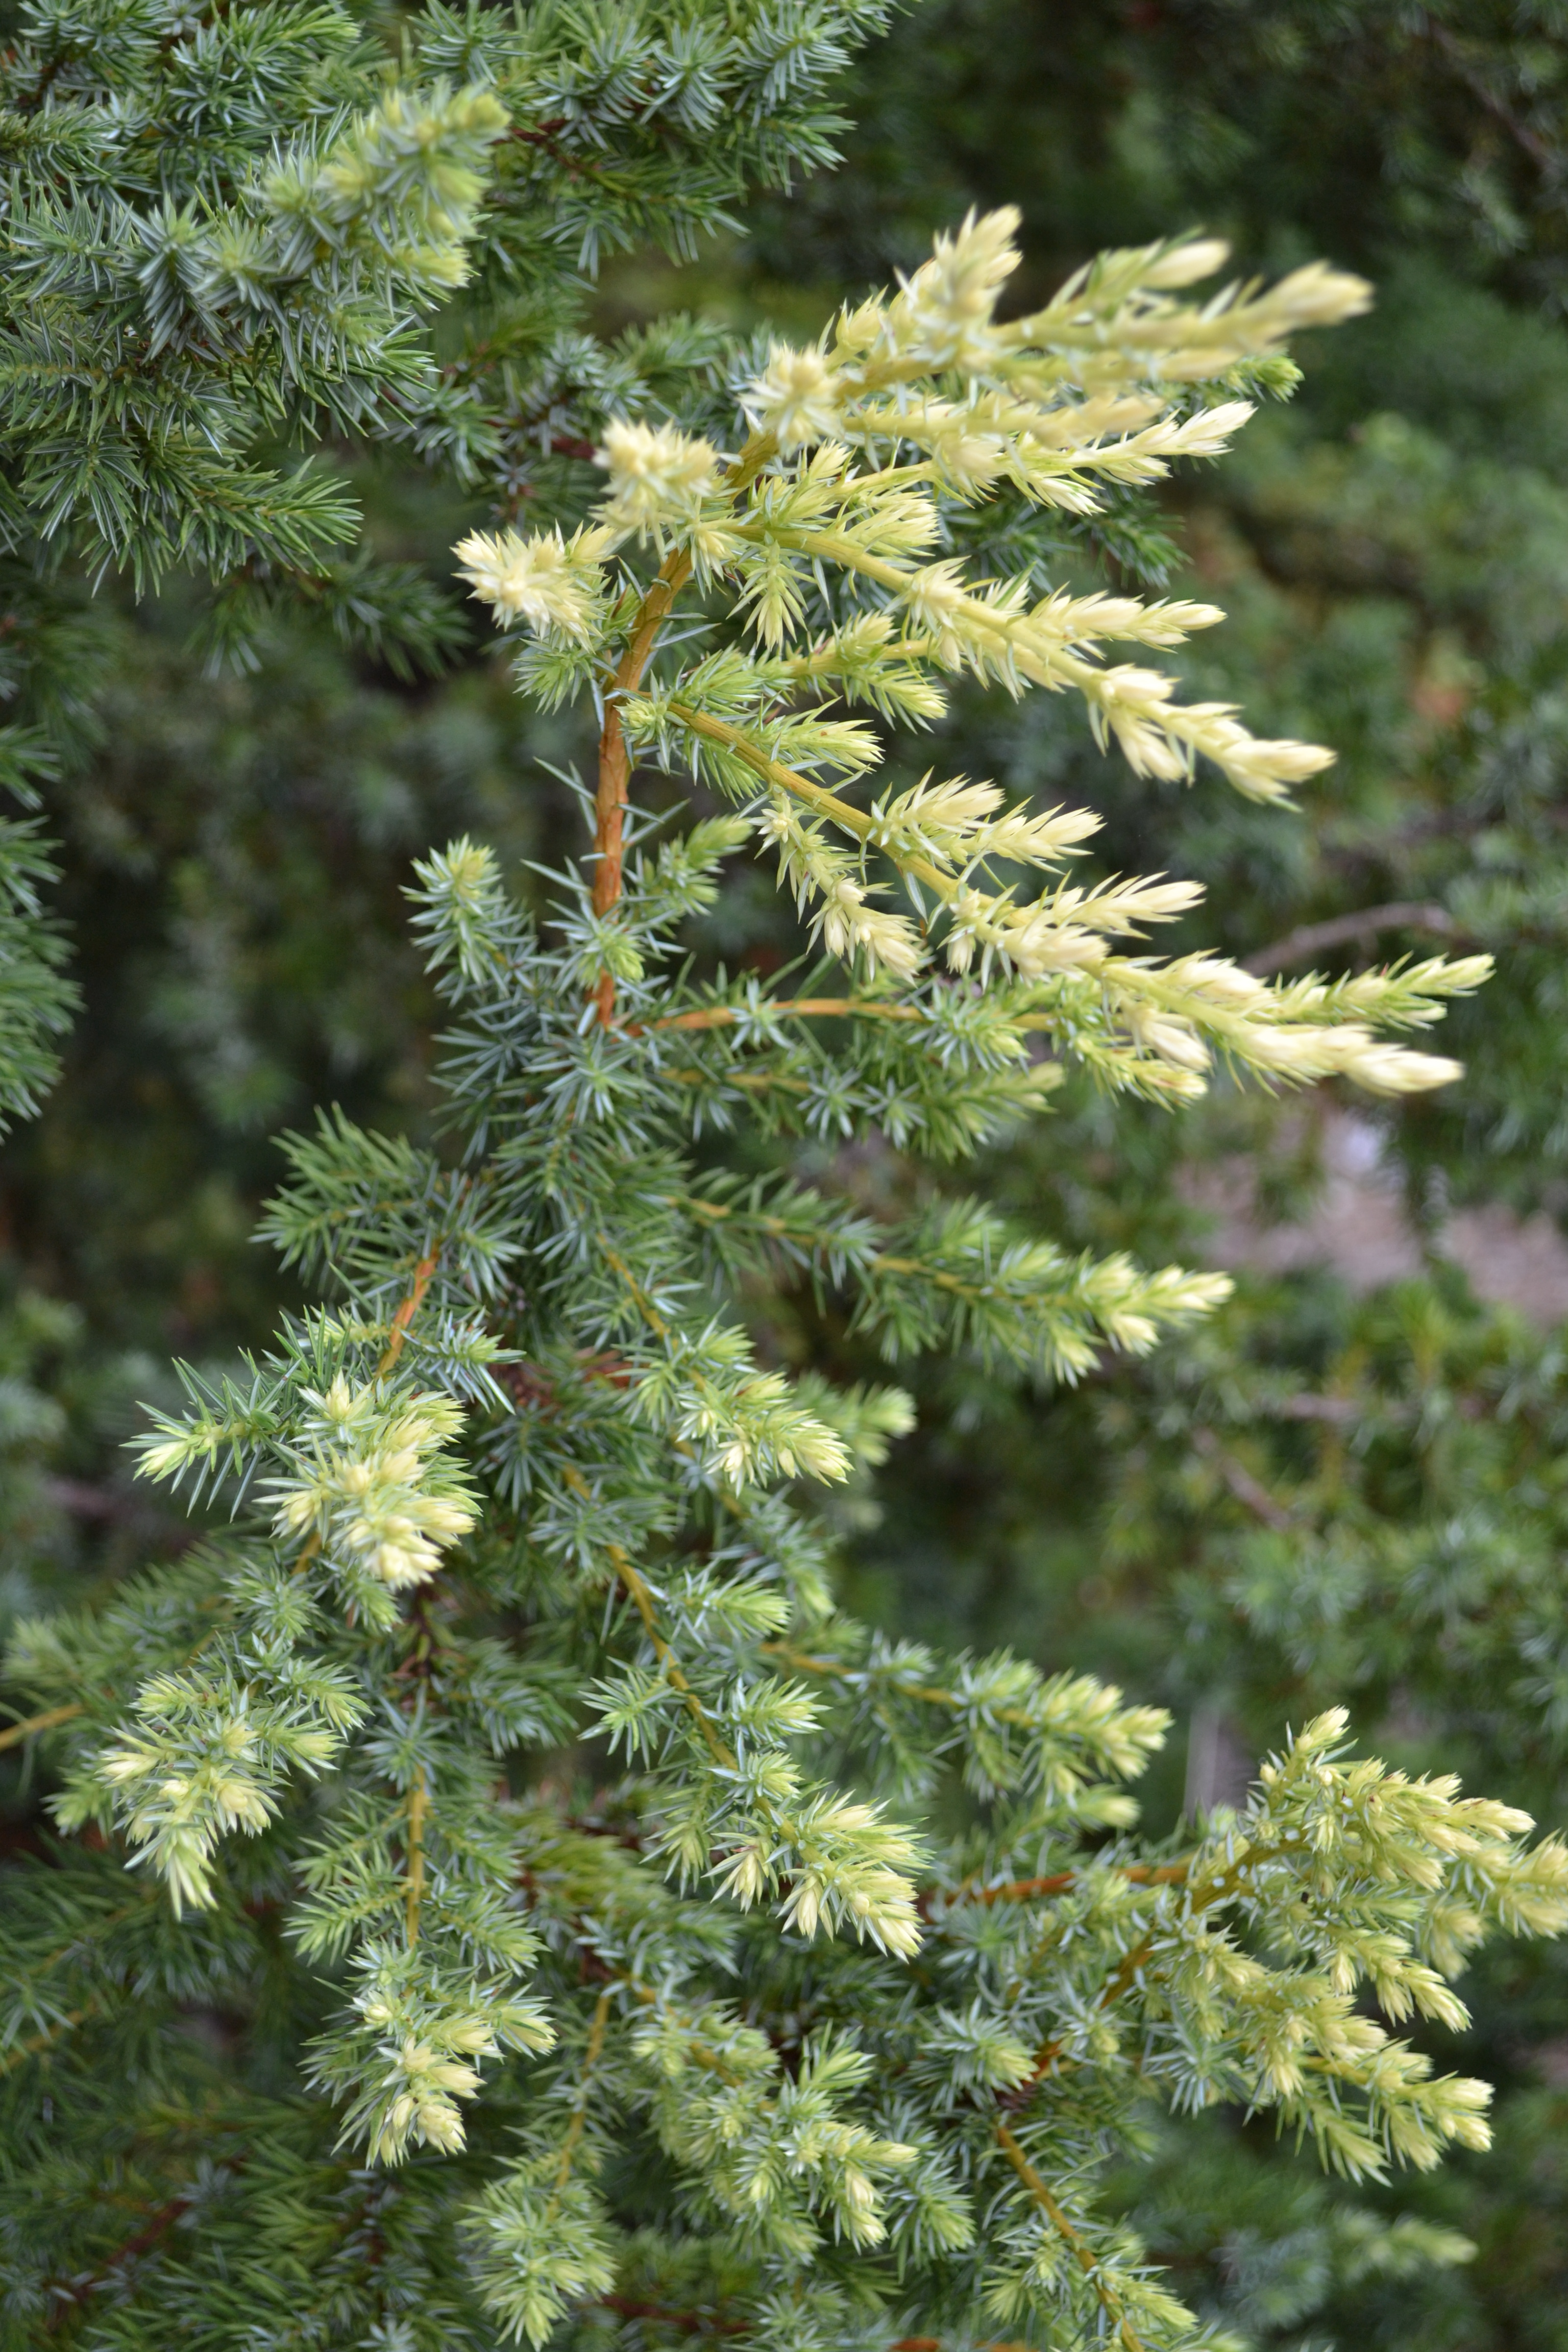 The Margaret Johanna Streb Conifer Garden blends textures and foliage colors to create year-round interest at Lewis Ginter Botanical Garden.